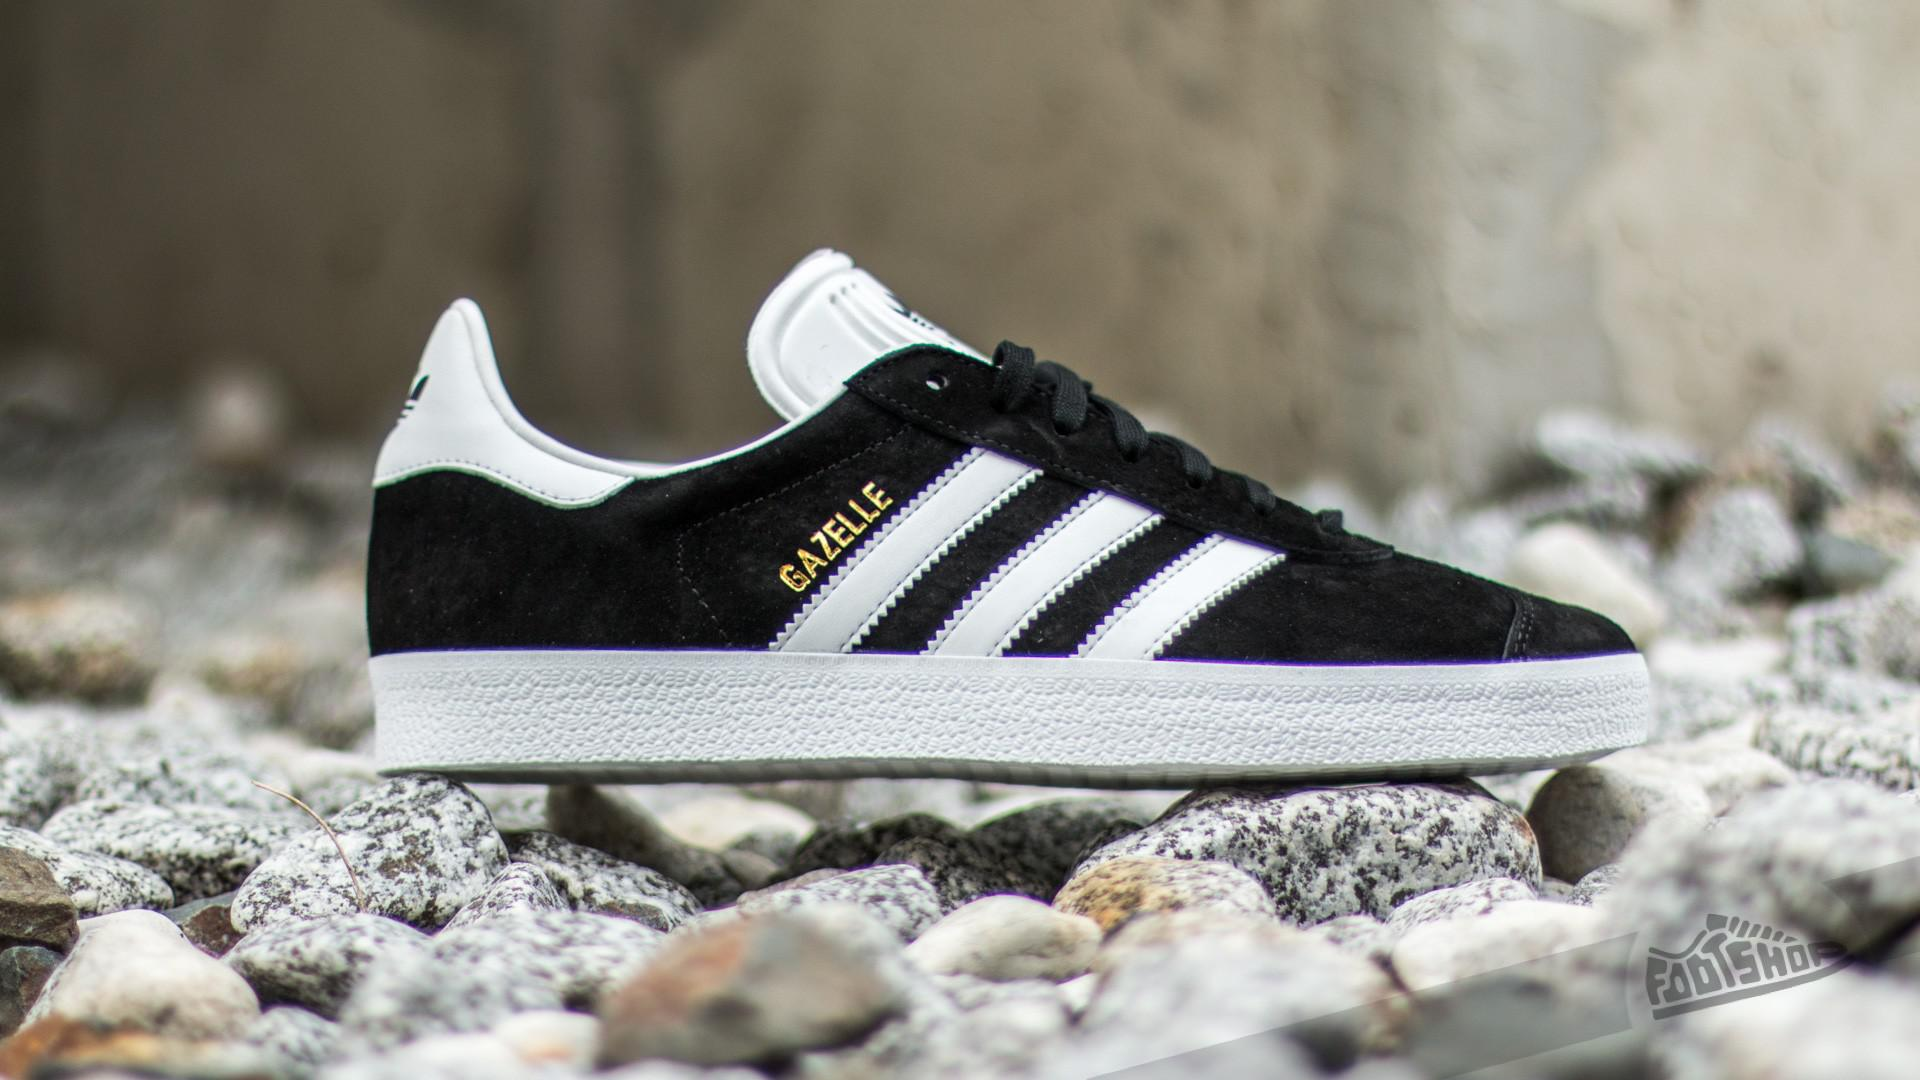 reputable site 3b8be 0957a Footshop. Mens Adidas Gazelle Core ...